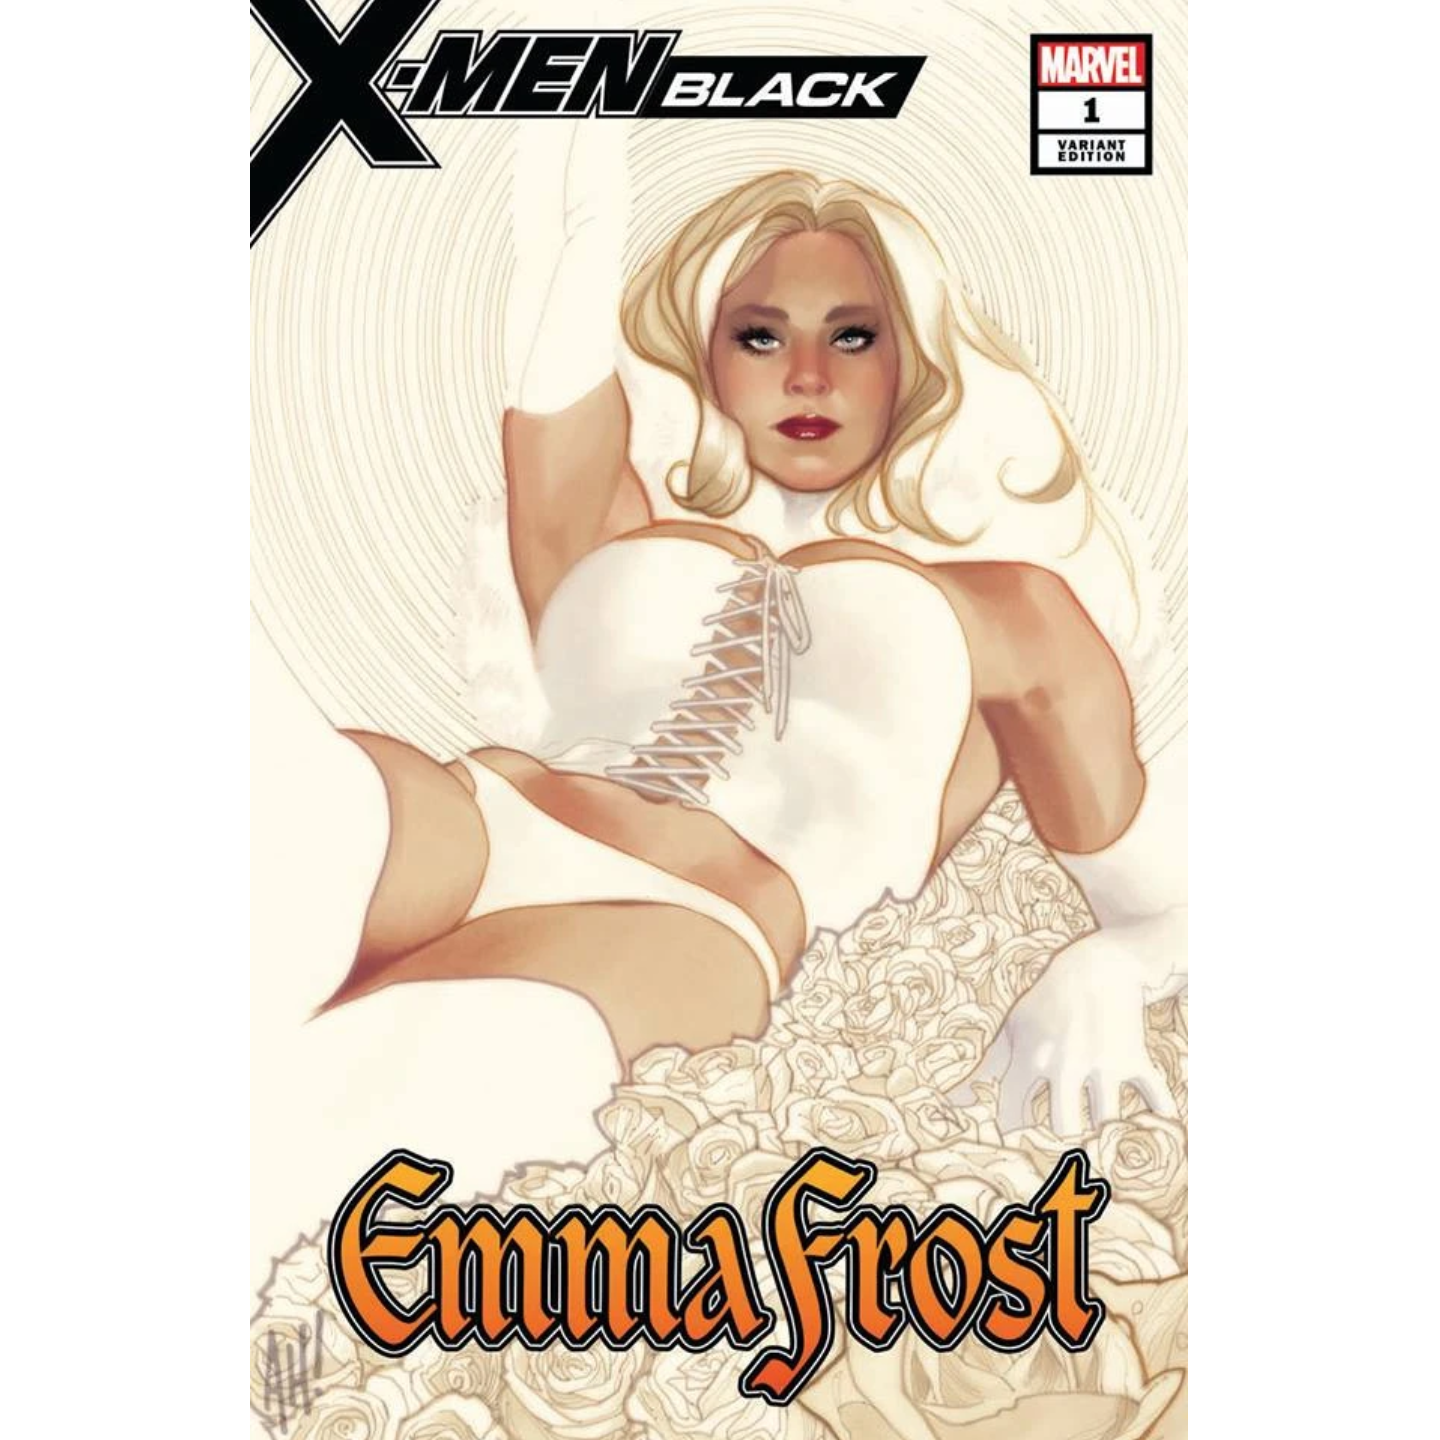 X-MEN BLACK EMMA FROST #1 ADAM HUGHES EXCLUSIVE VARIANT